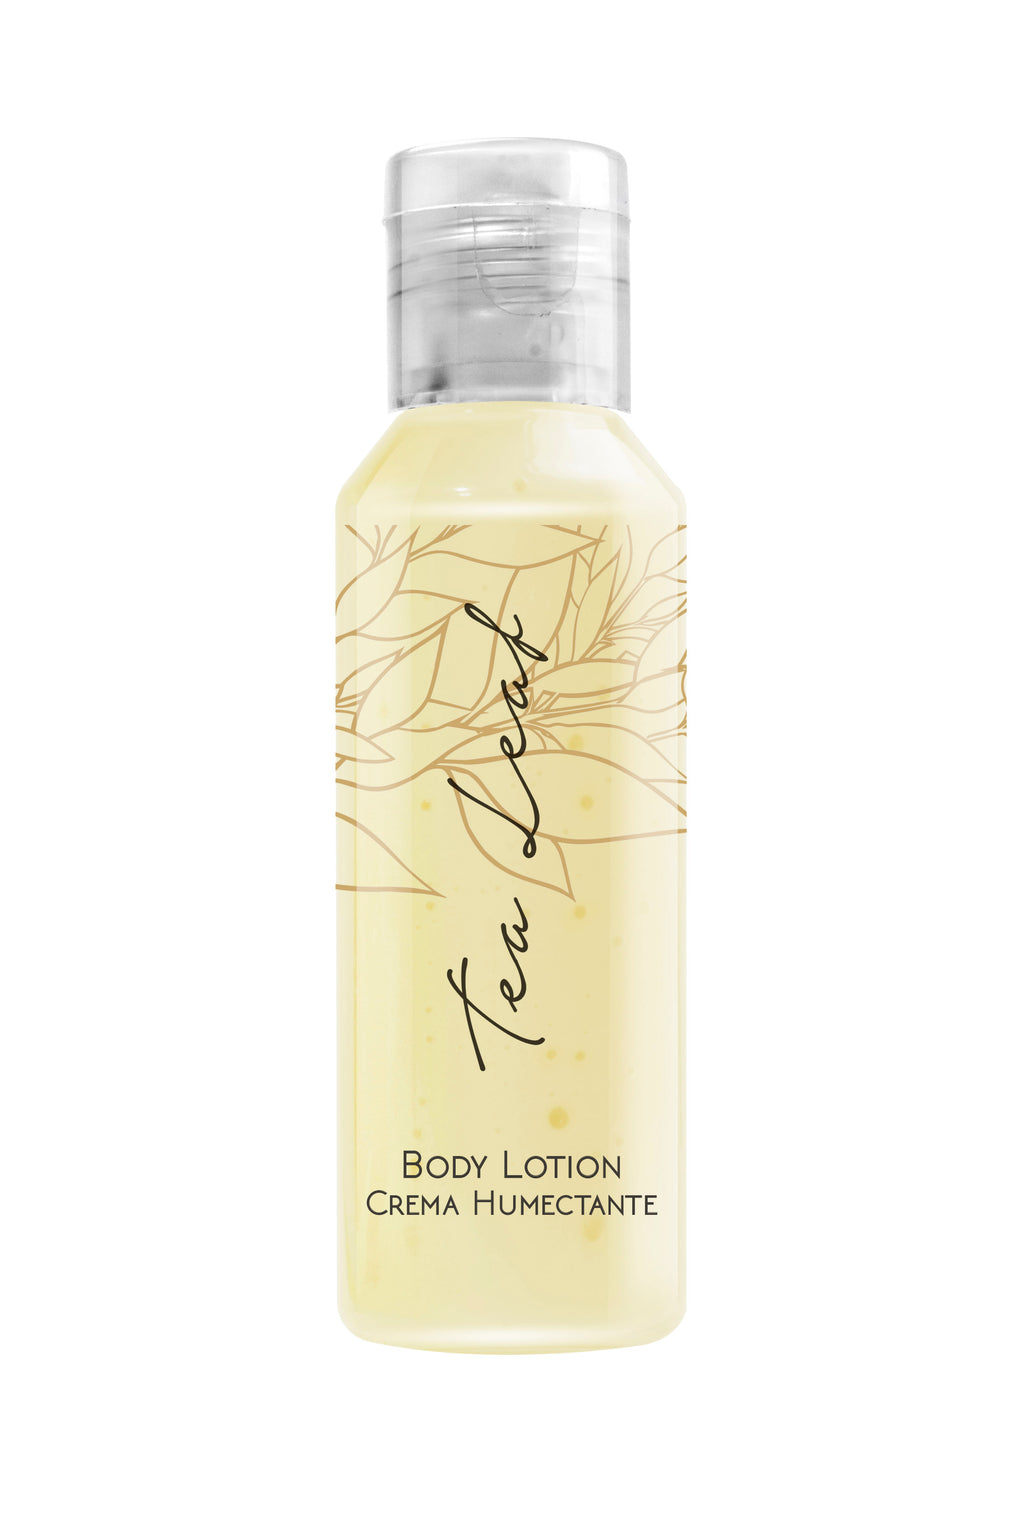 Tea Leaf BODY LOTION - 1oz